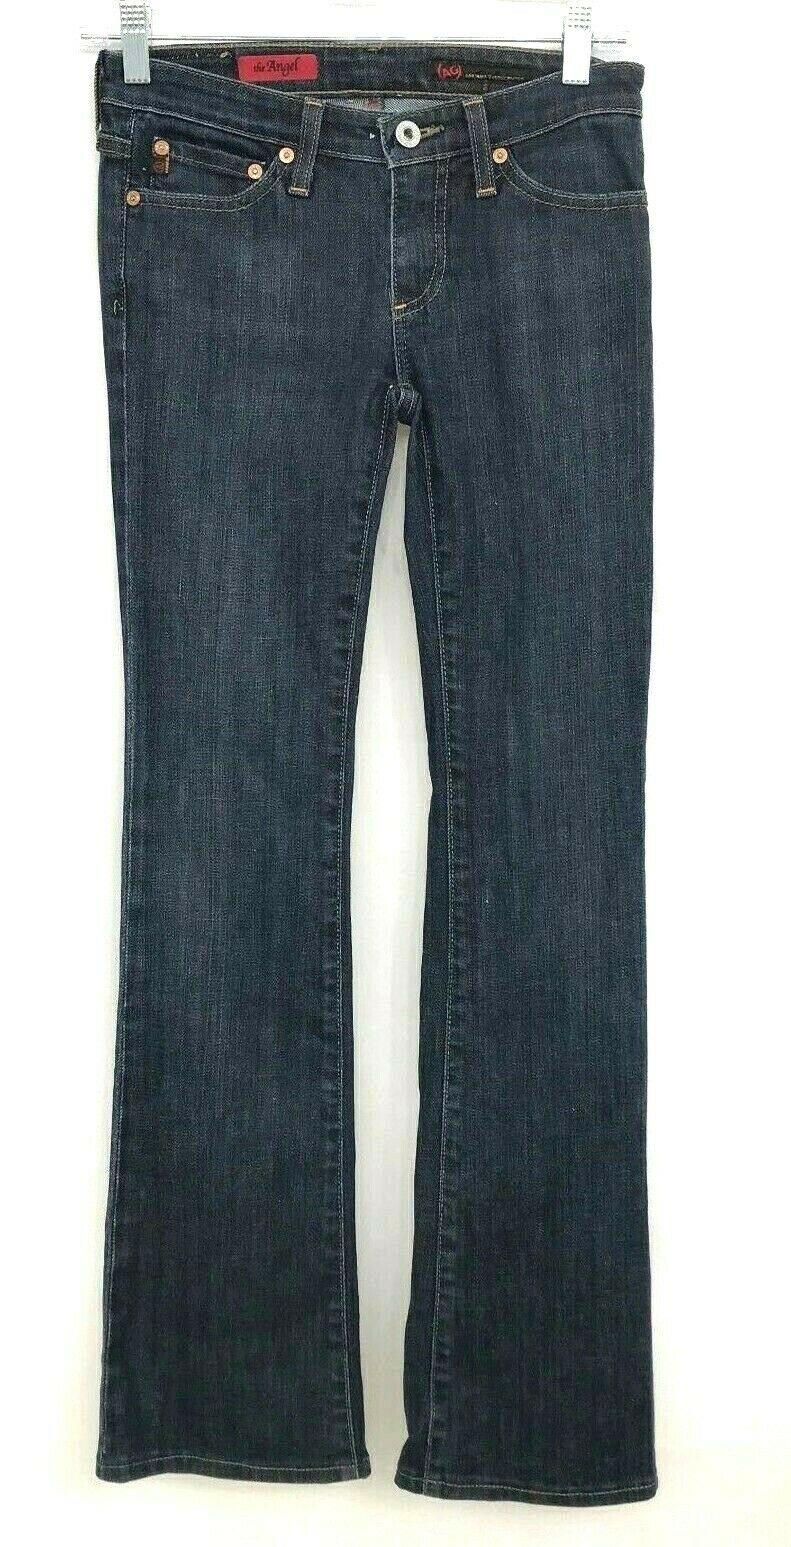 AG Adriano goldschmied Jeans  Womens The Angel W24R L30 Bootcut Dark bluee Wash